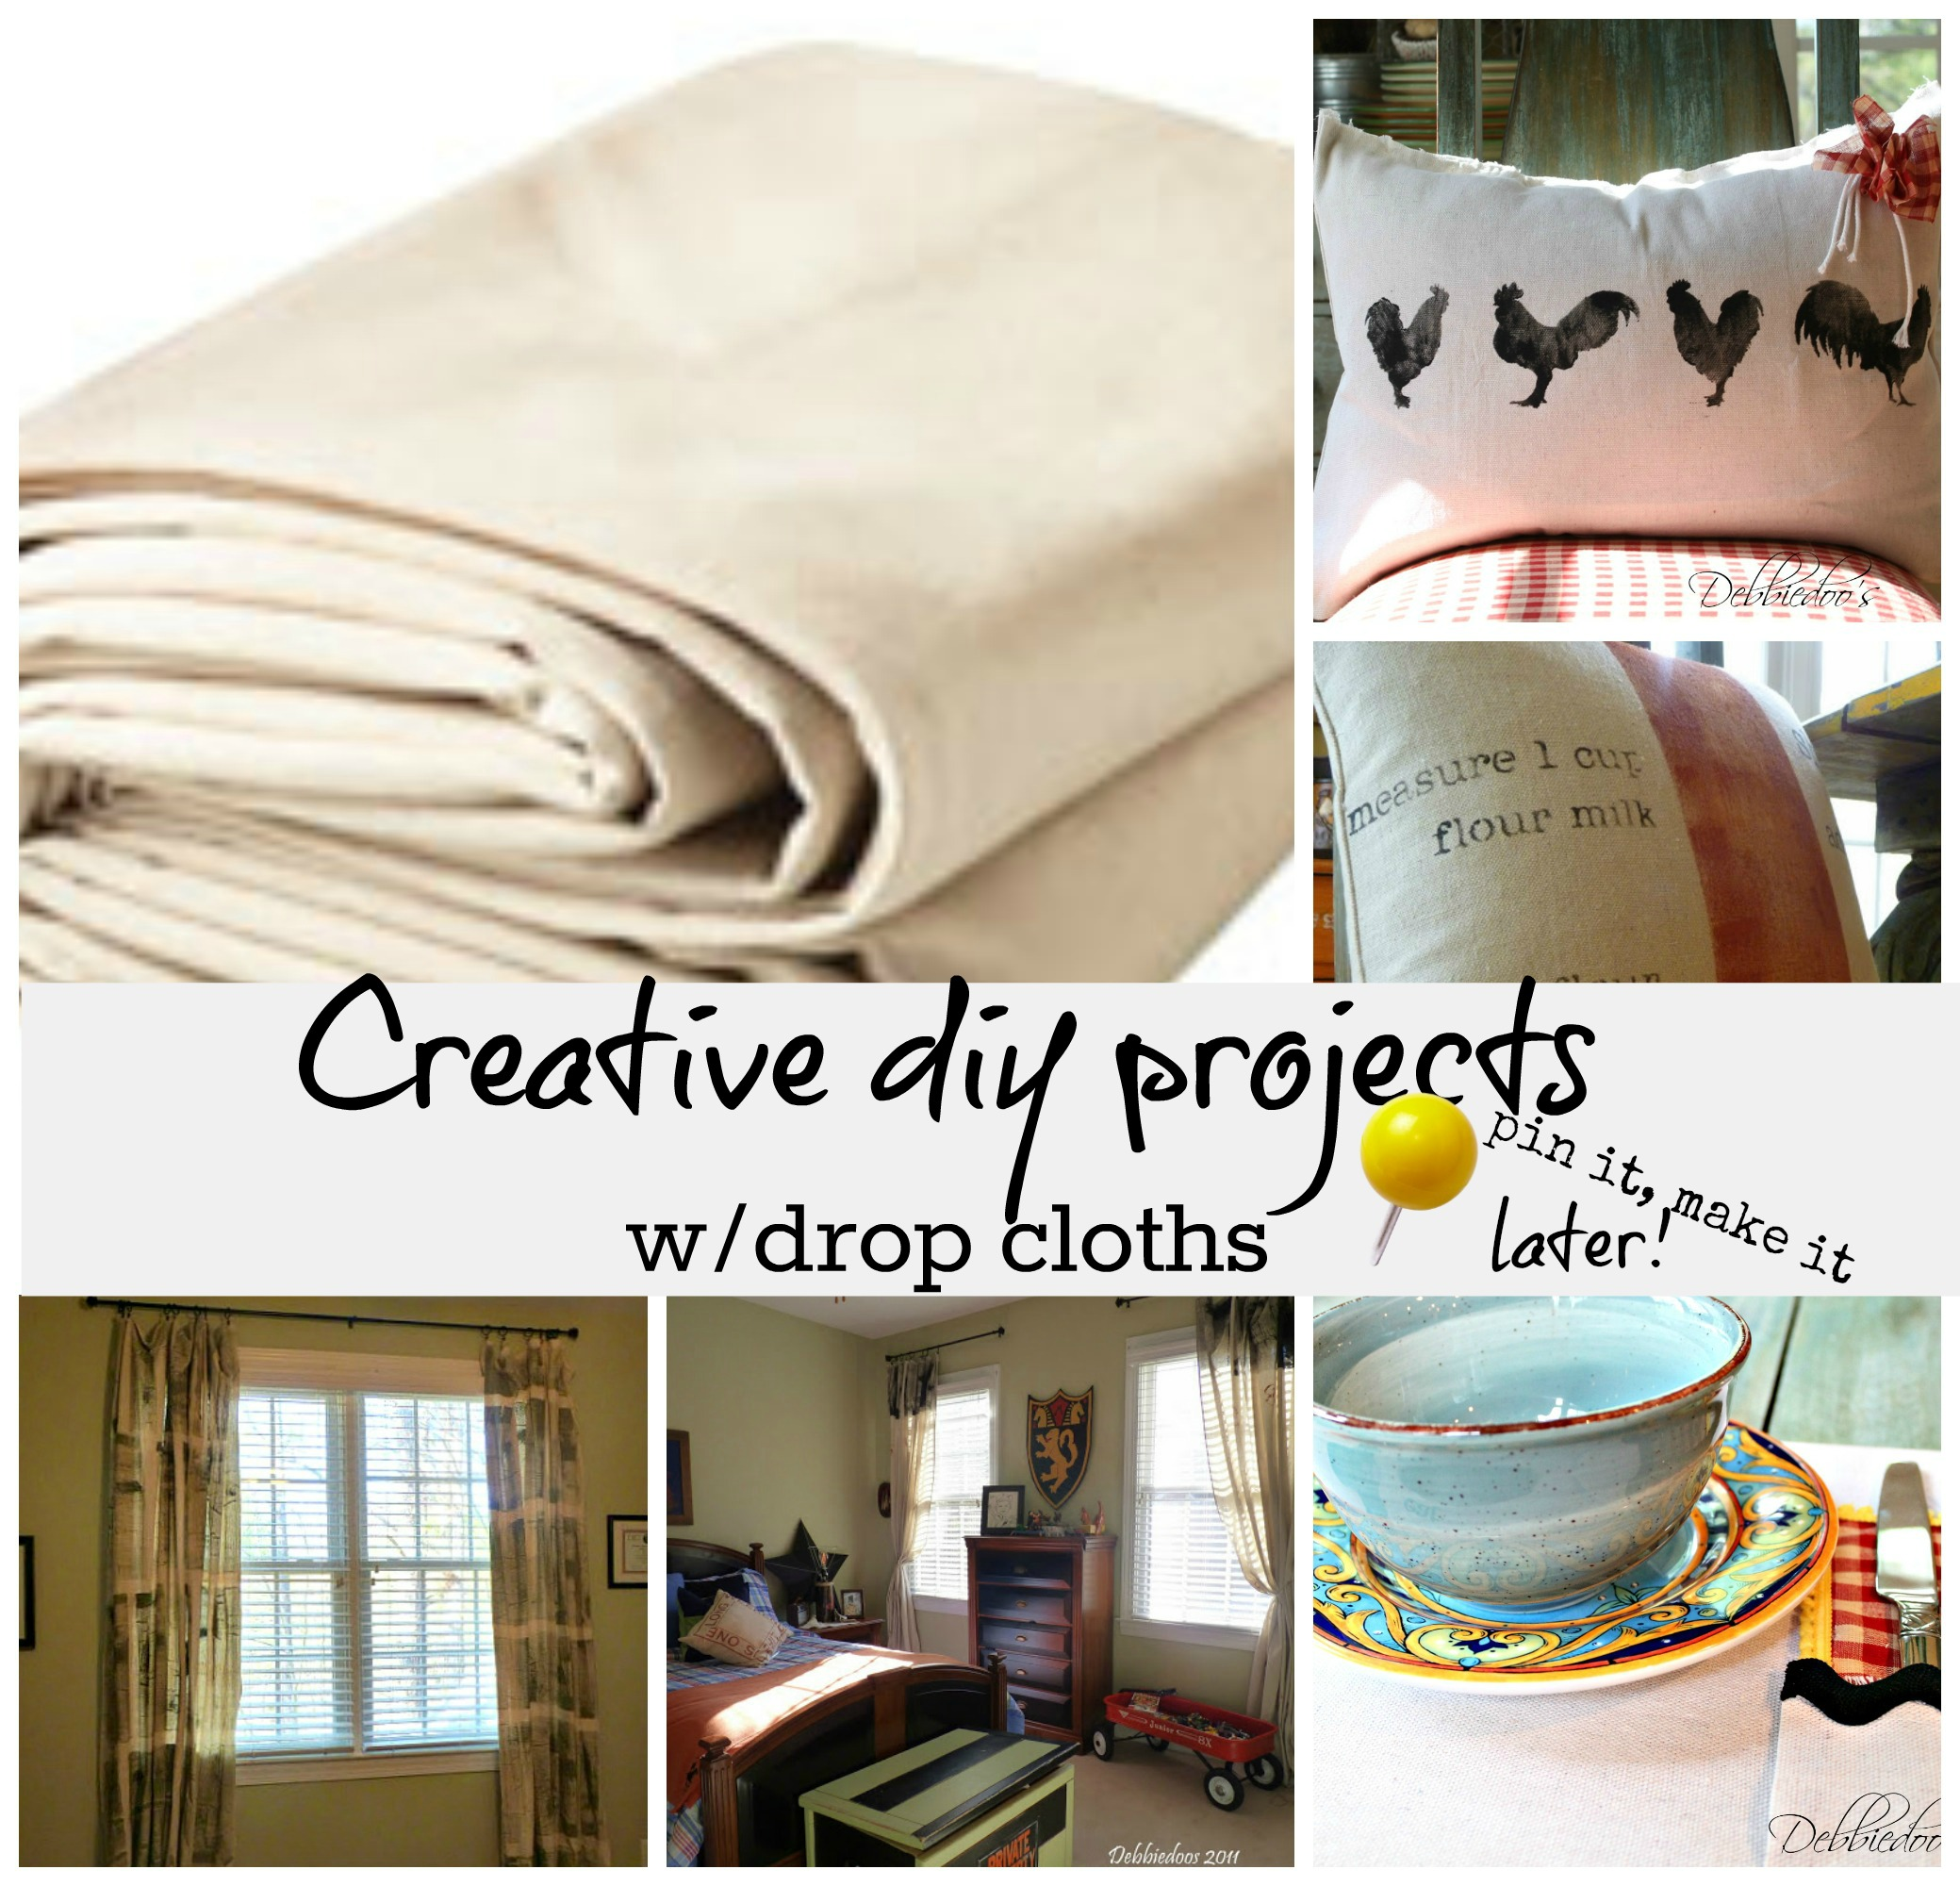 Projects: Diy Projects Out Of Drop Cloths